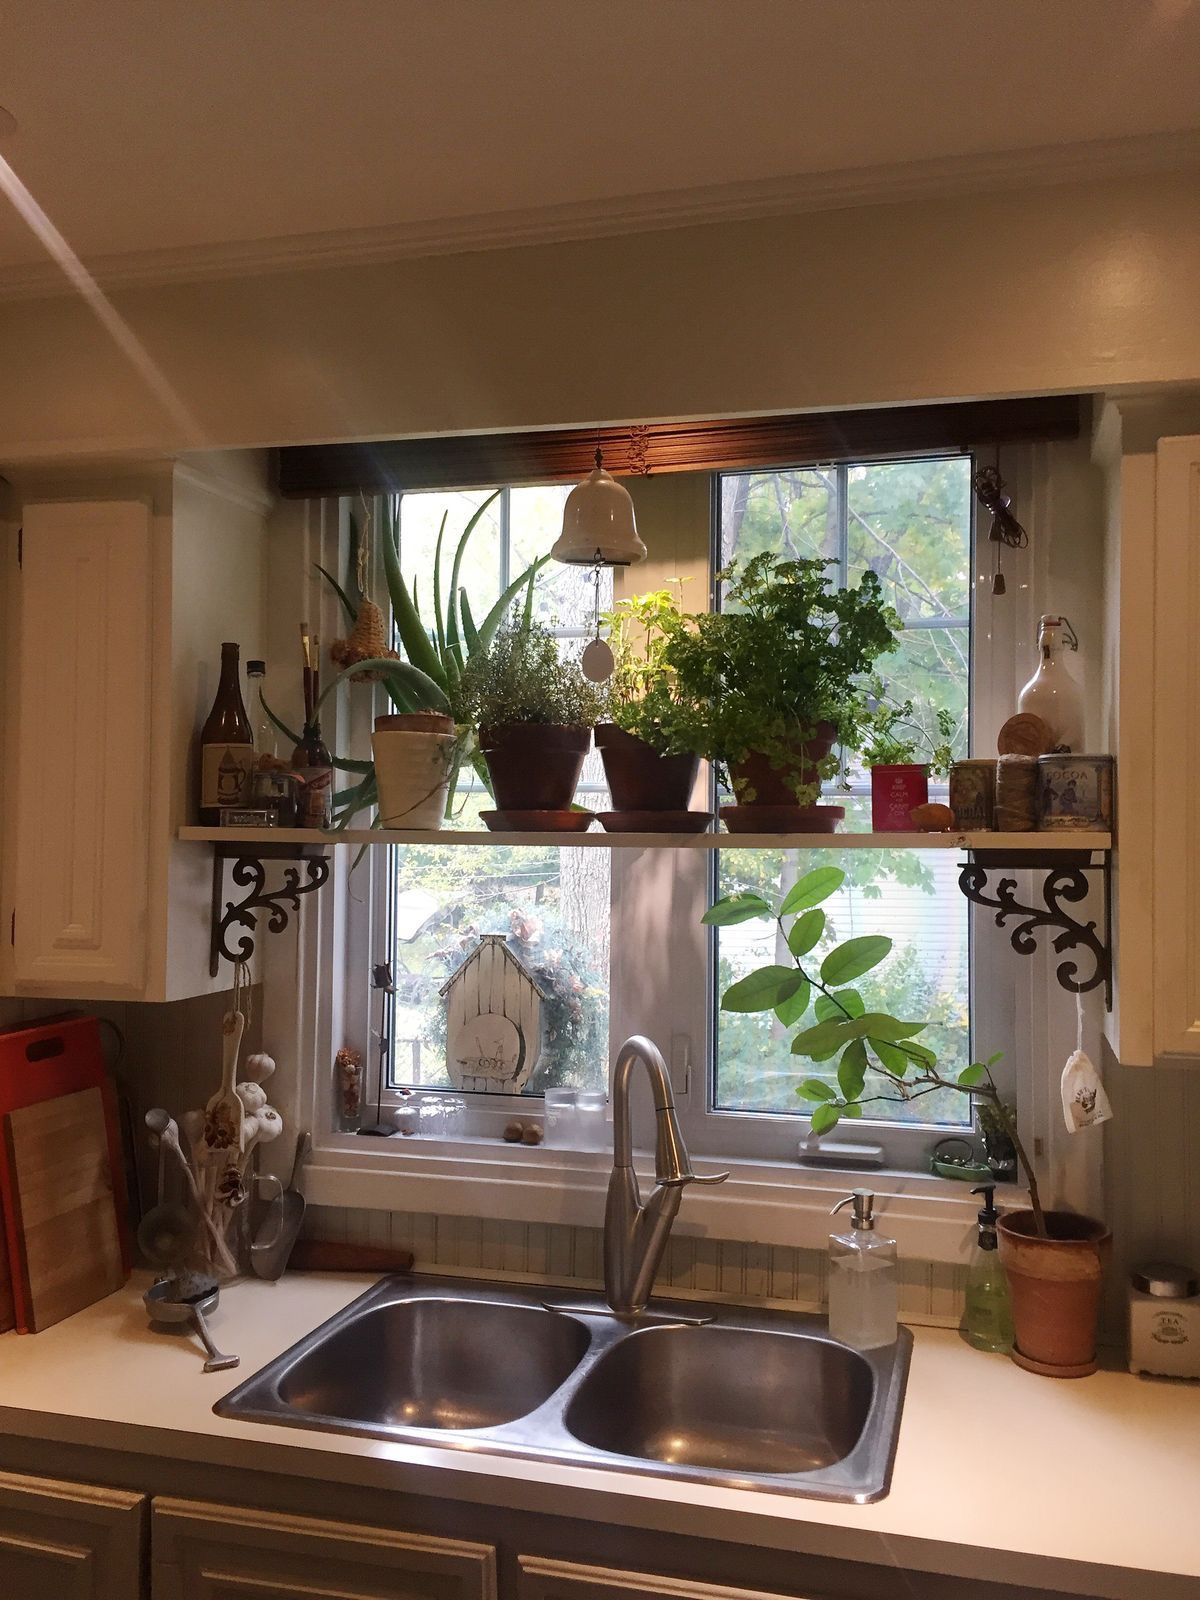 No window kitchen sink  pin by joday on house ideas in   pinterest  house